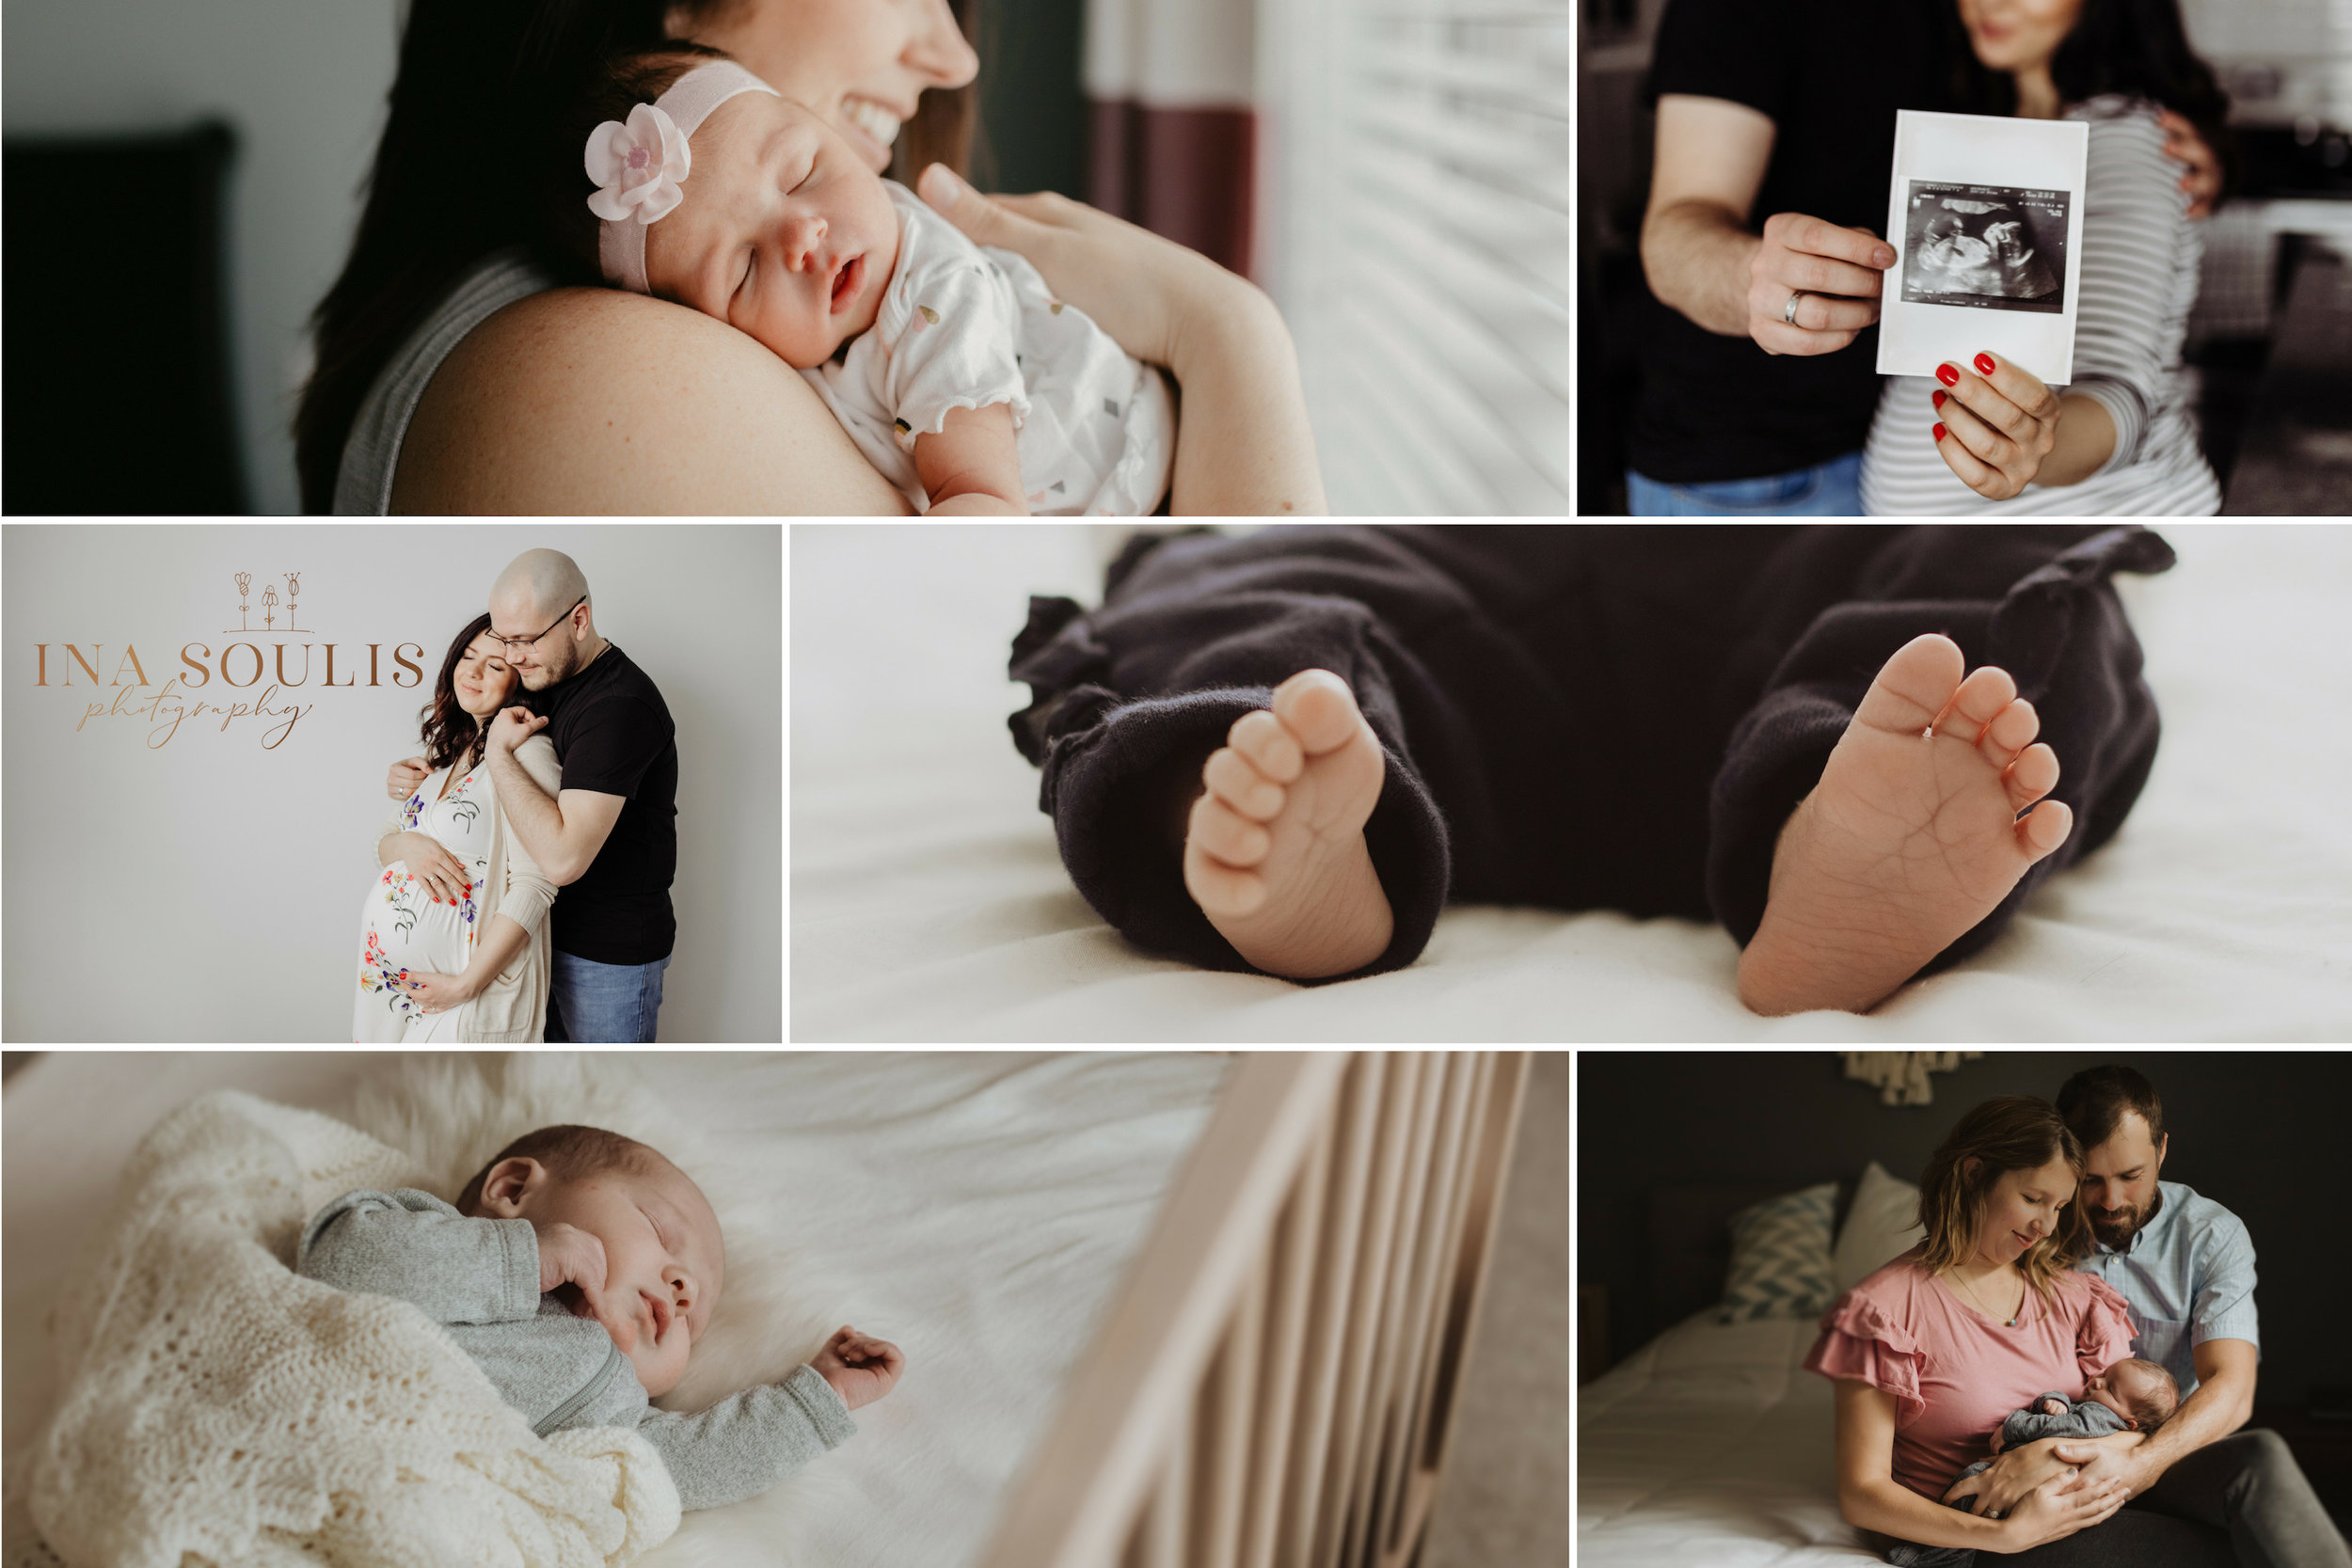 Ina Soulis Photography Kanata Ottawa Maternity Newborn Couple Couples photographer family baby toes pregnancy announcement happiness nursery decor milestone session monthly goals april motivation inspiration business owner momboss mompreneur momlife.jpg